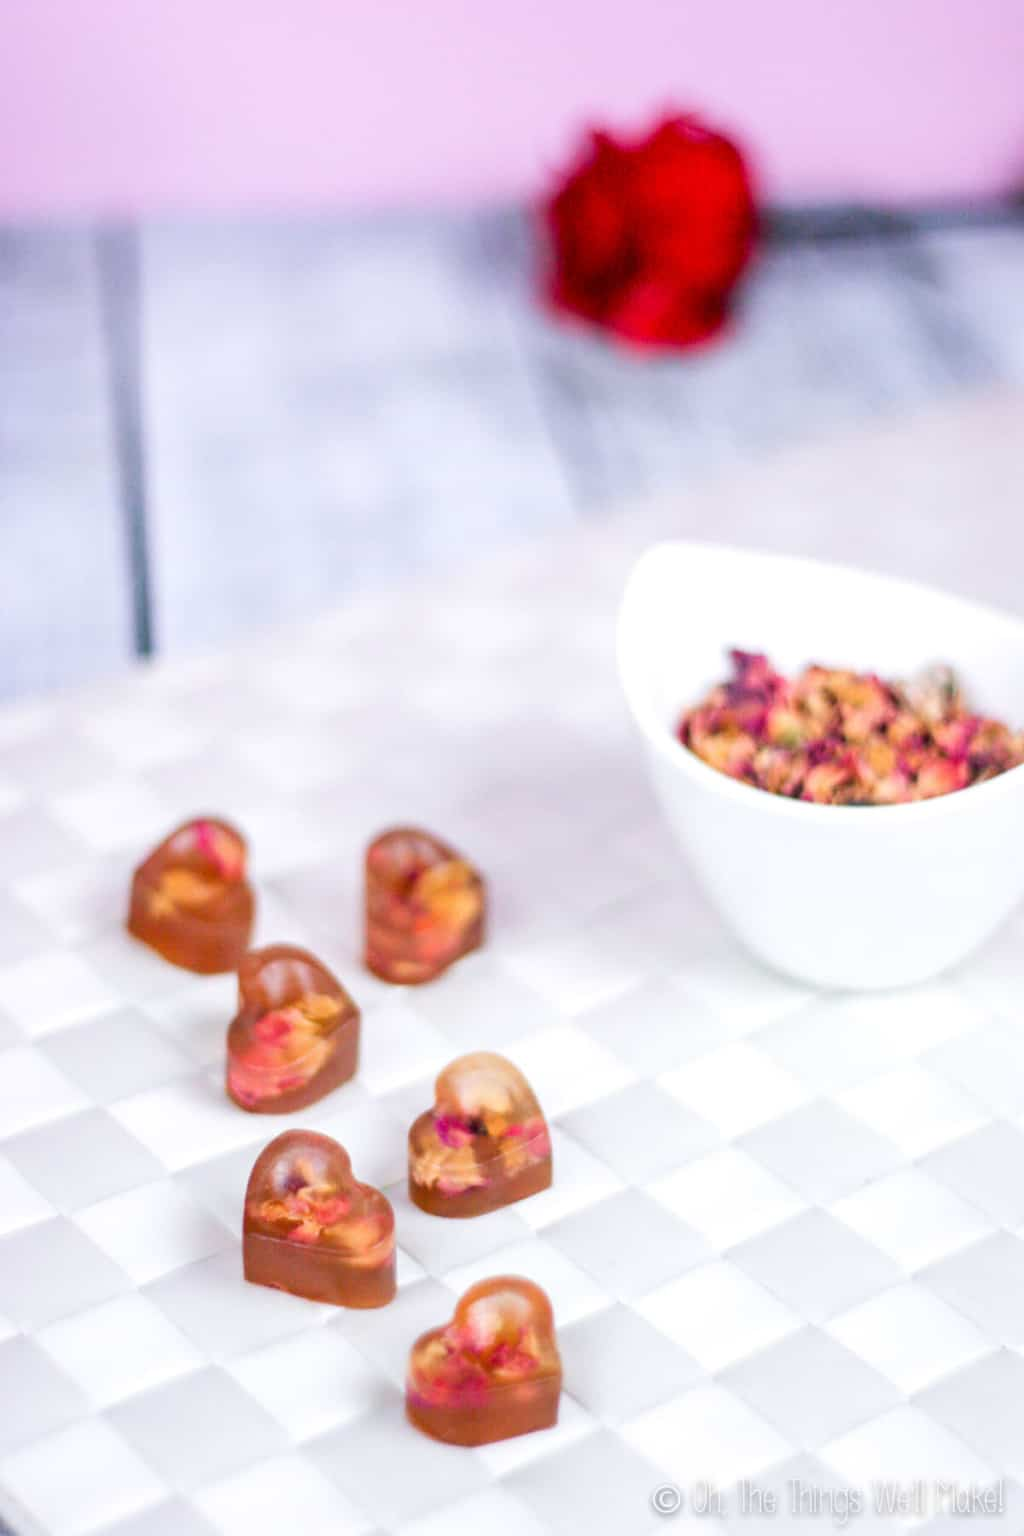 Close up of heart shaped gummy treats with real rose petals inside next to a bowl full of rose petals , placed on a white woven surface. A single red rose is at the background.